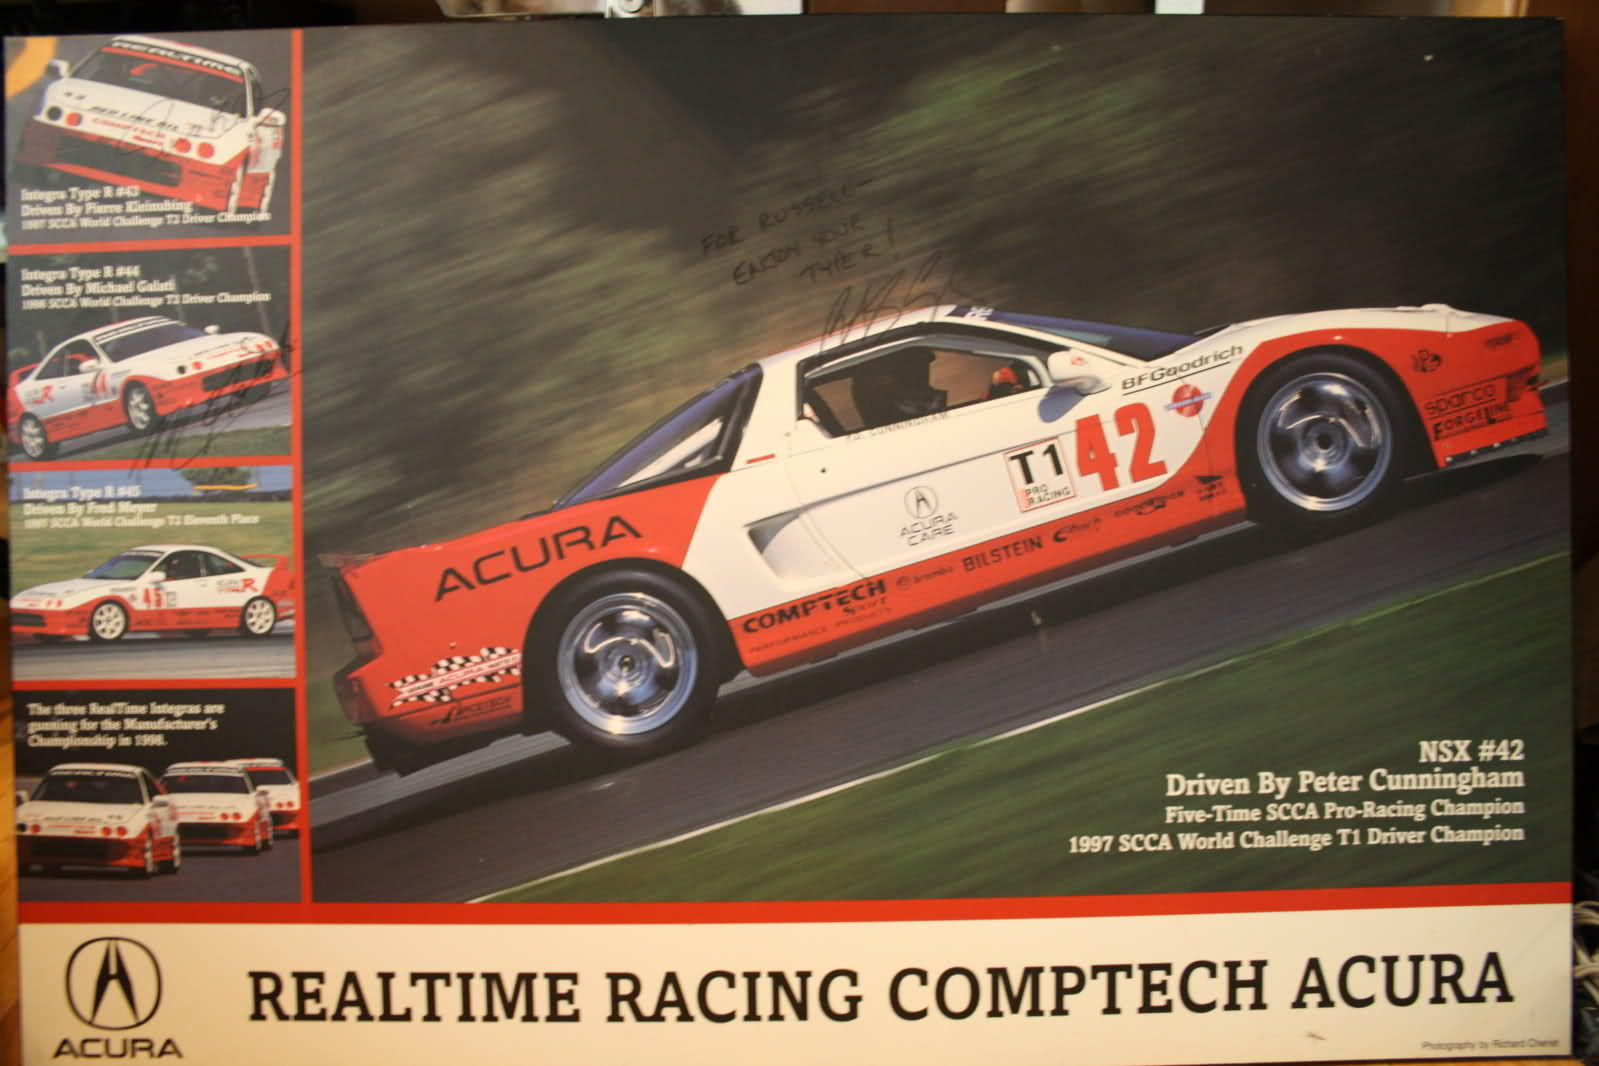 1996 Acura NSX   1997 World Challenge Champion Peter Cunningham and the RealTime Racing Acura NSX on Forgeline RS Wheels